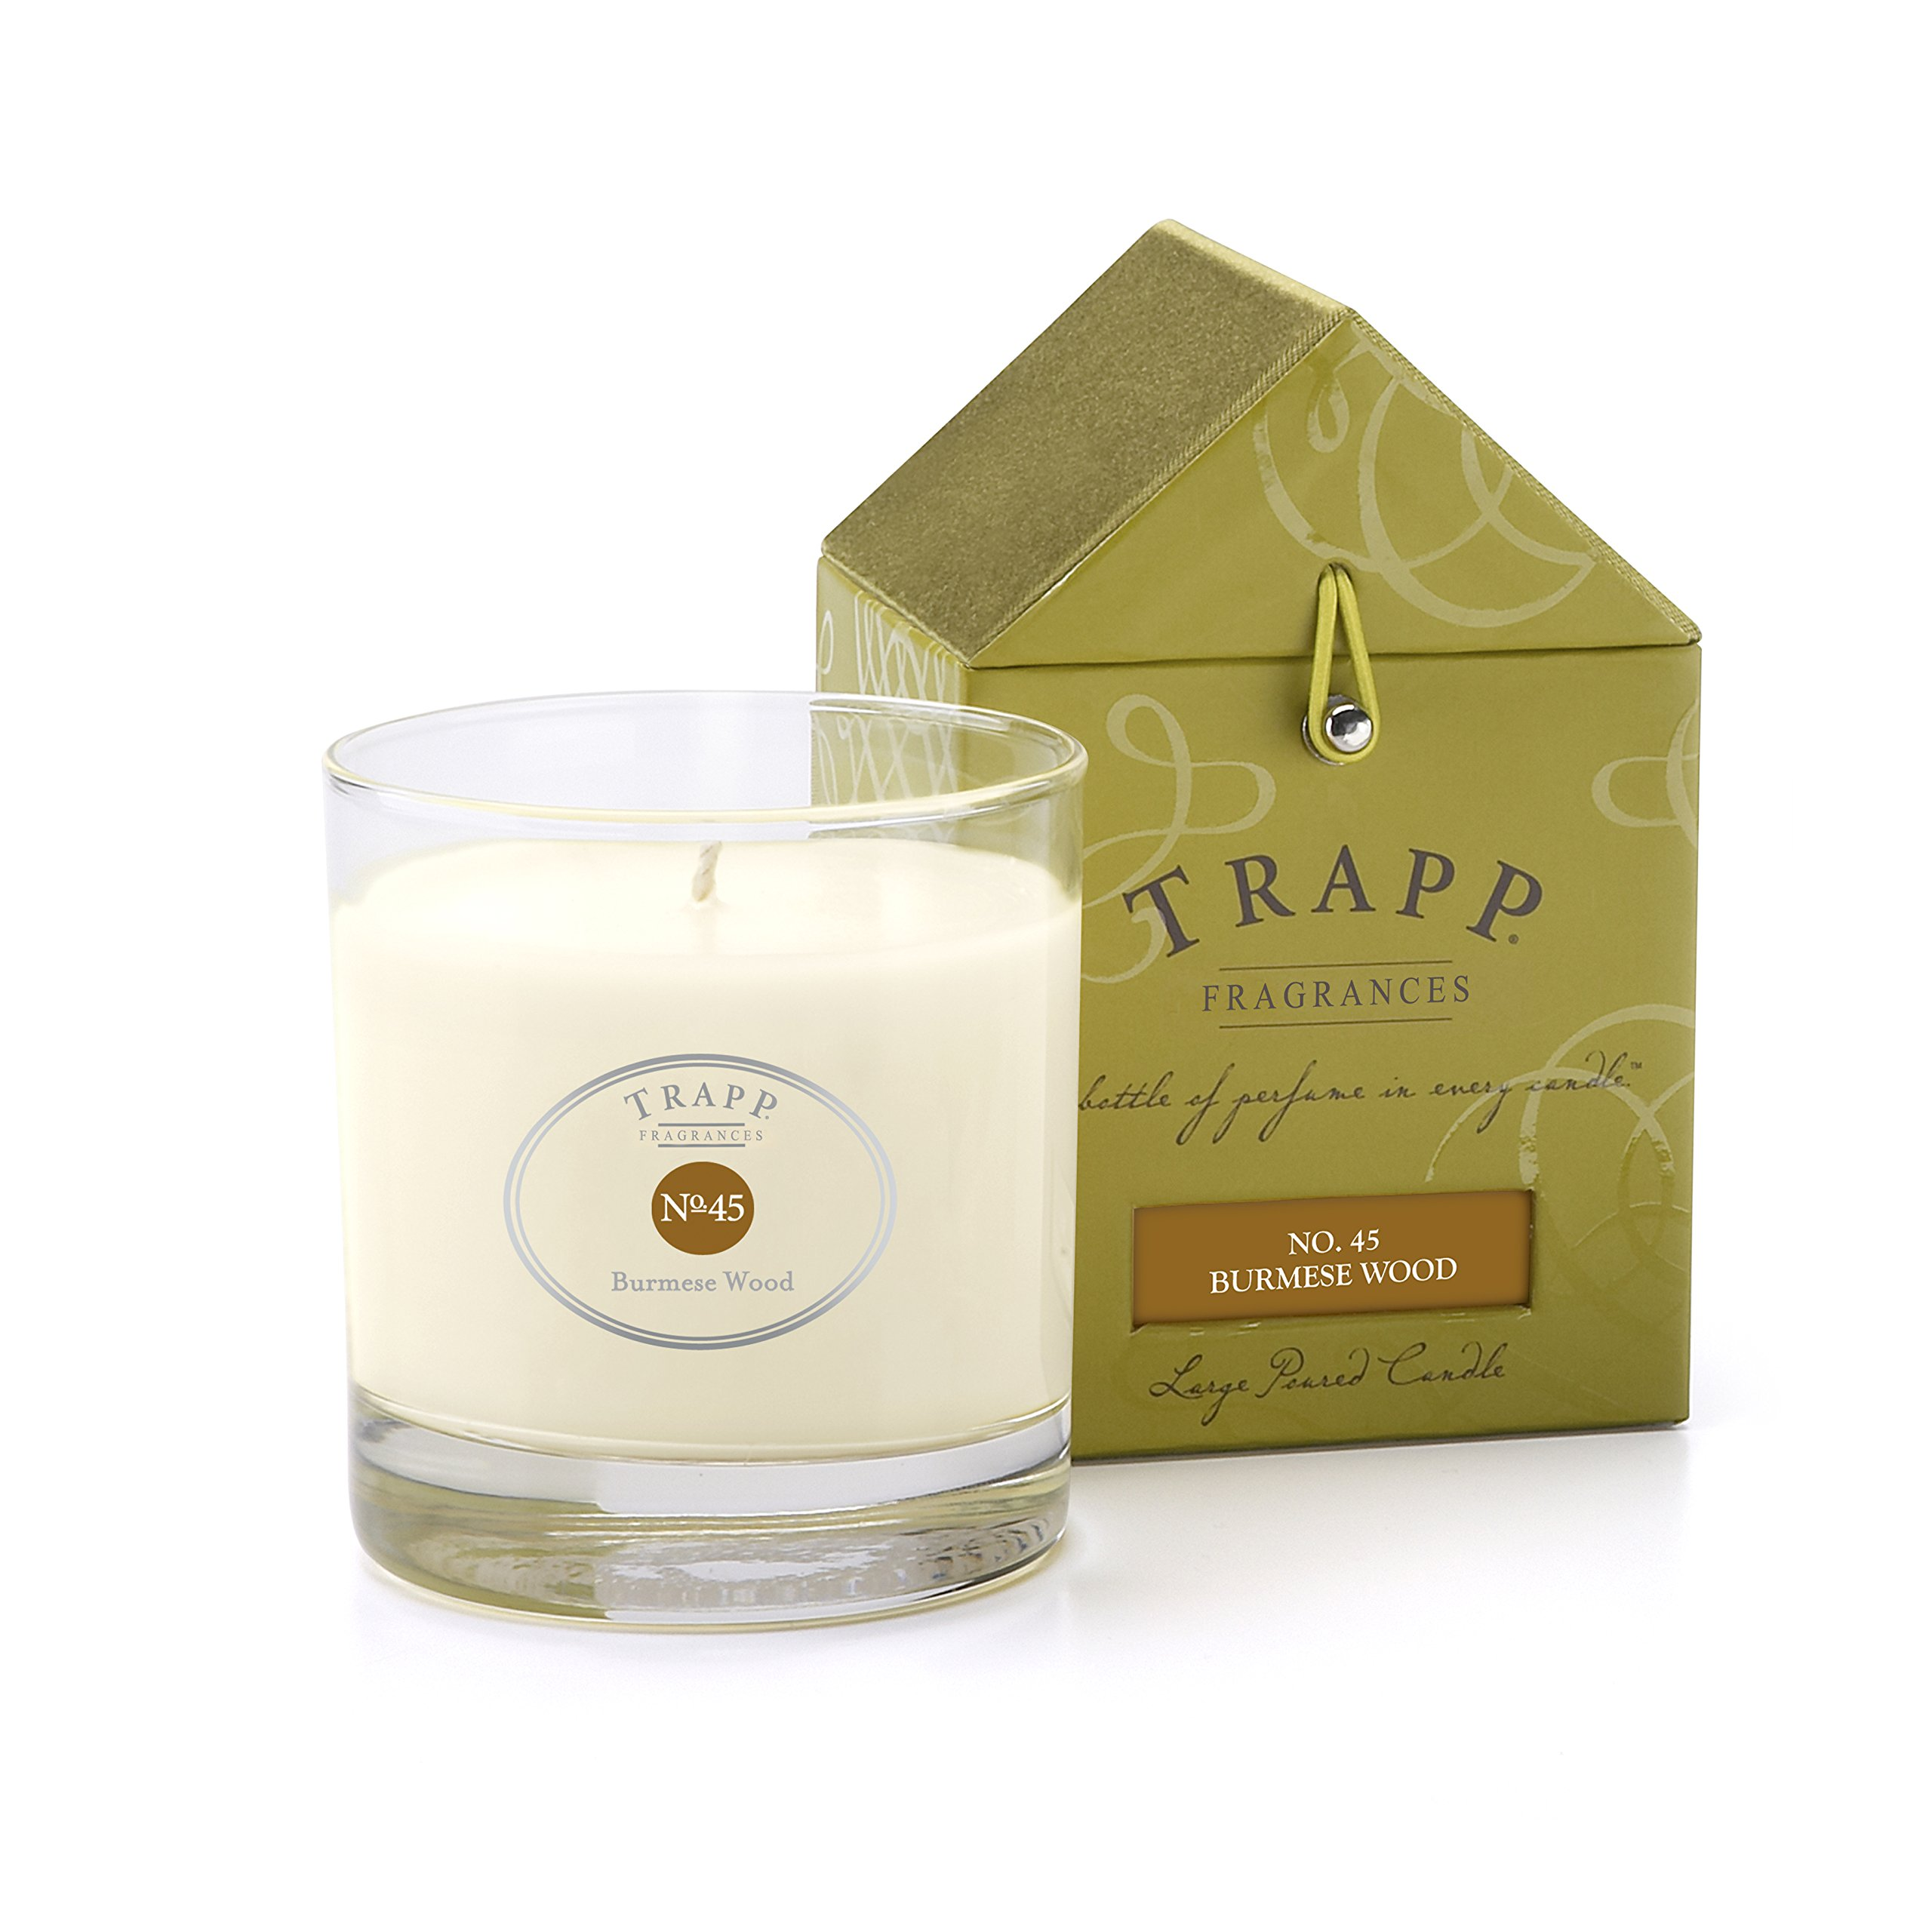 Trapp Signature Home Collection No. 45 Burmese Wood Poured Scented Candle, 7-Ounce by Trapp (Image #1)